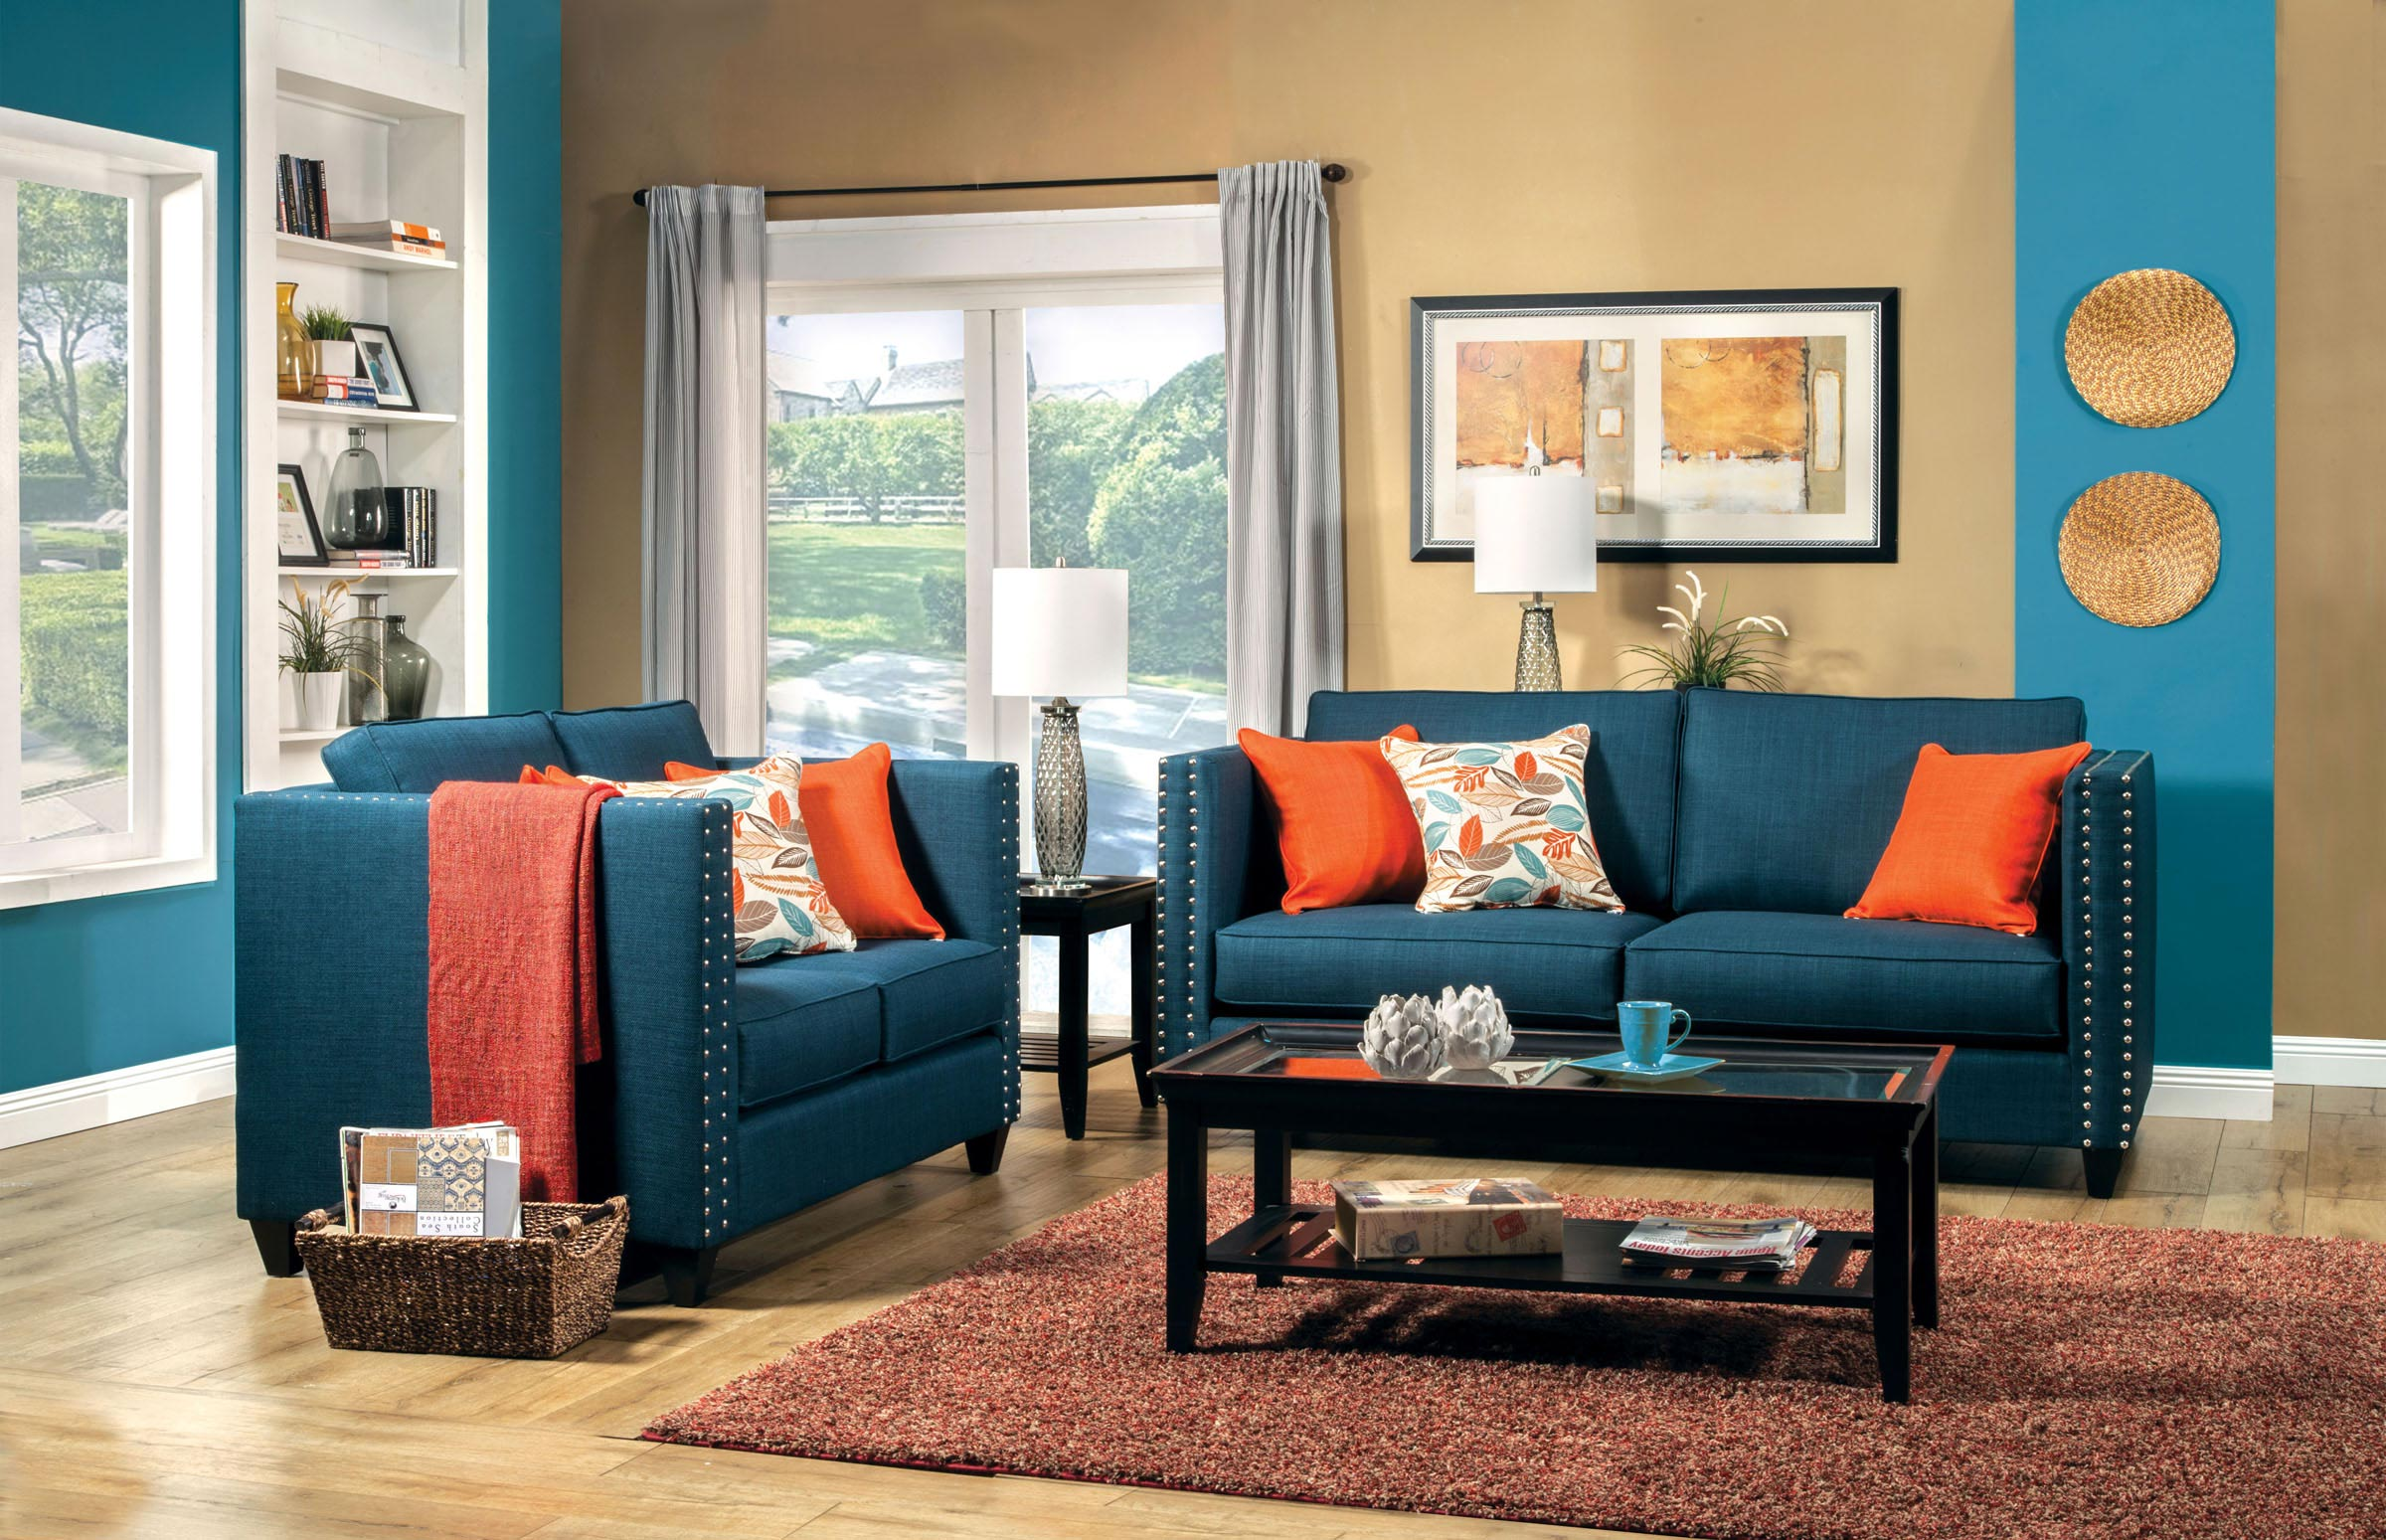 2 Pcs Turquoise Blue Sofa Set